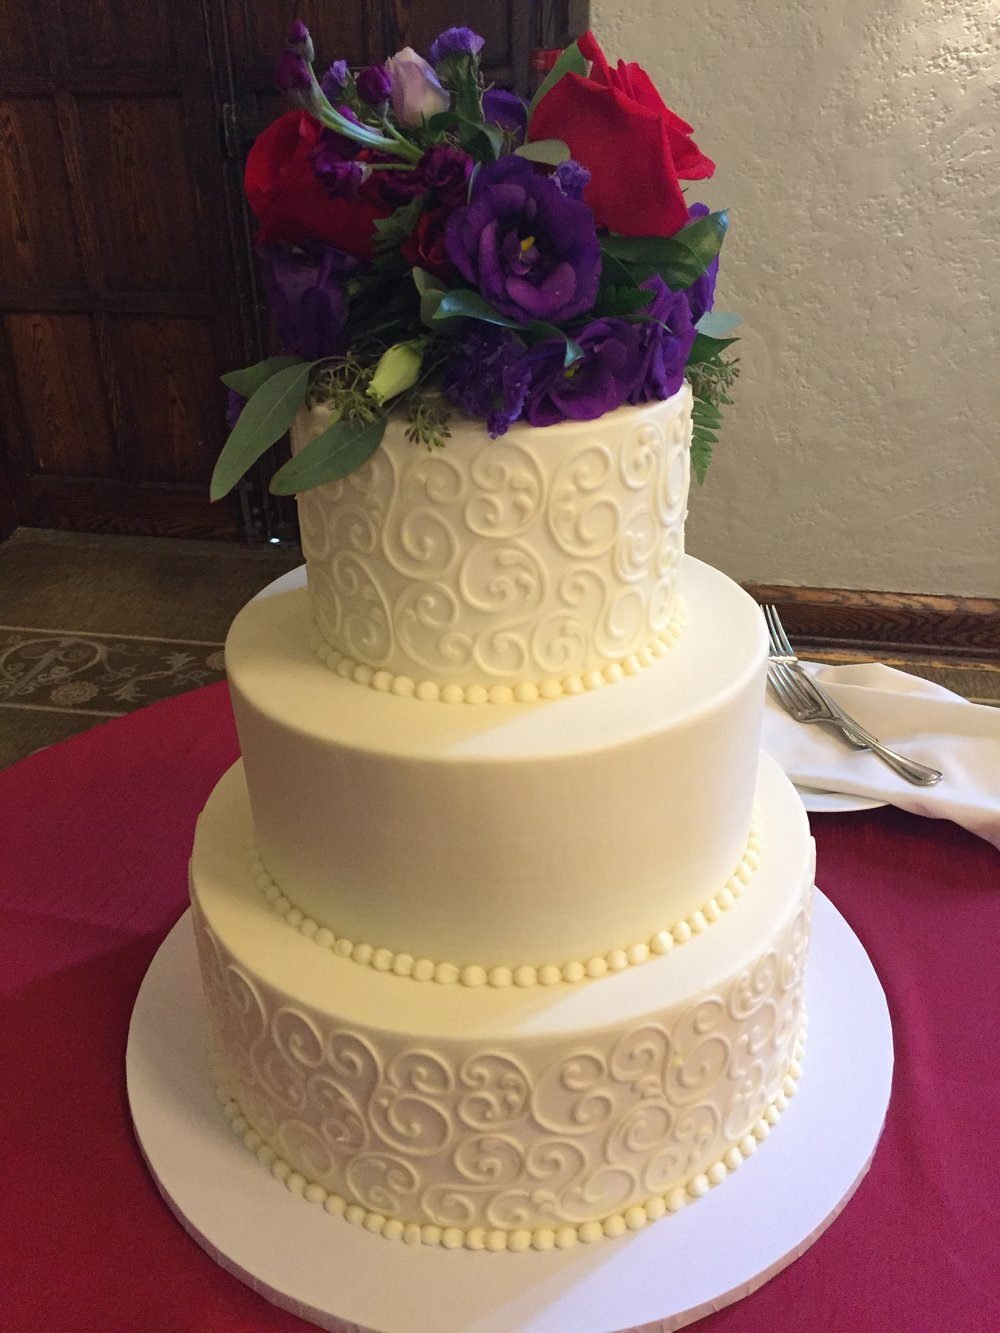 Jewel Tone Colors for a Wedding Cake